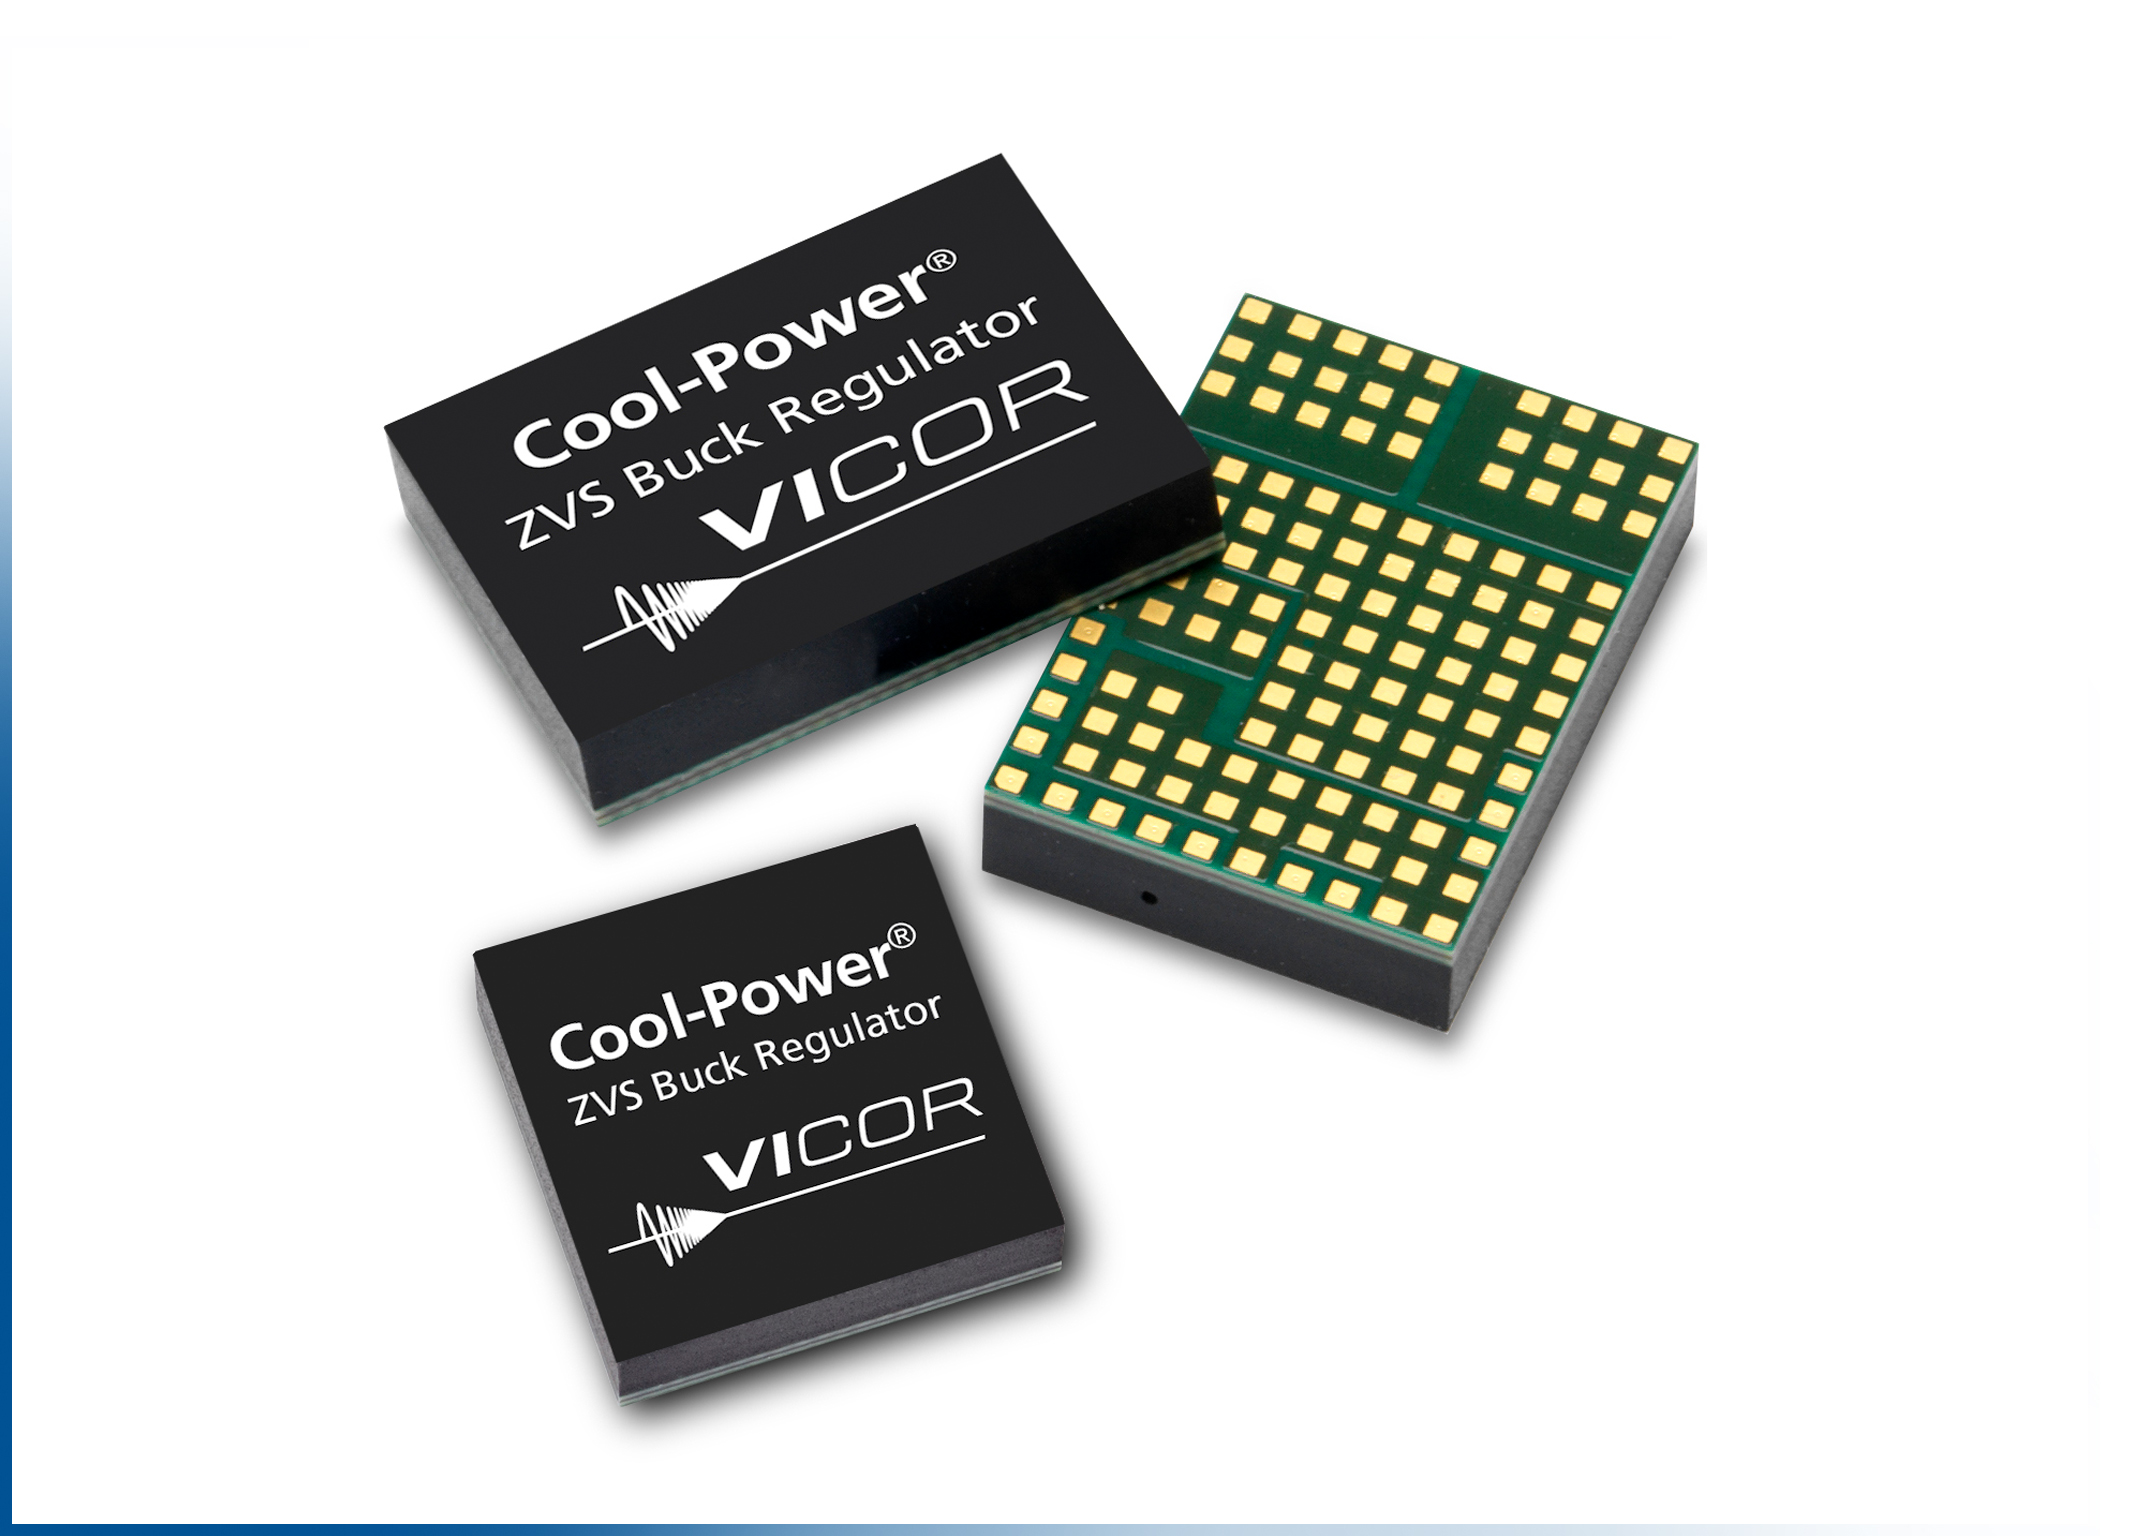 Cool-Power ZVS Buck Regulator Extends 48V Direct-to-Point of Load Product Family